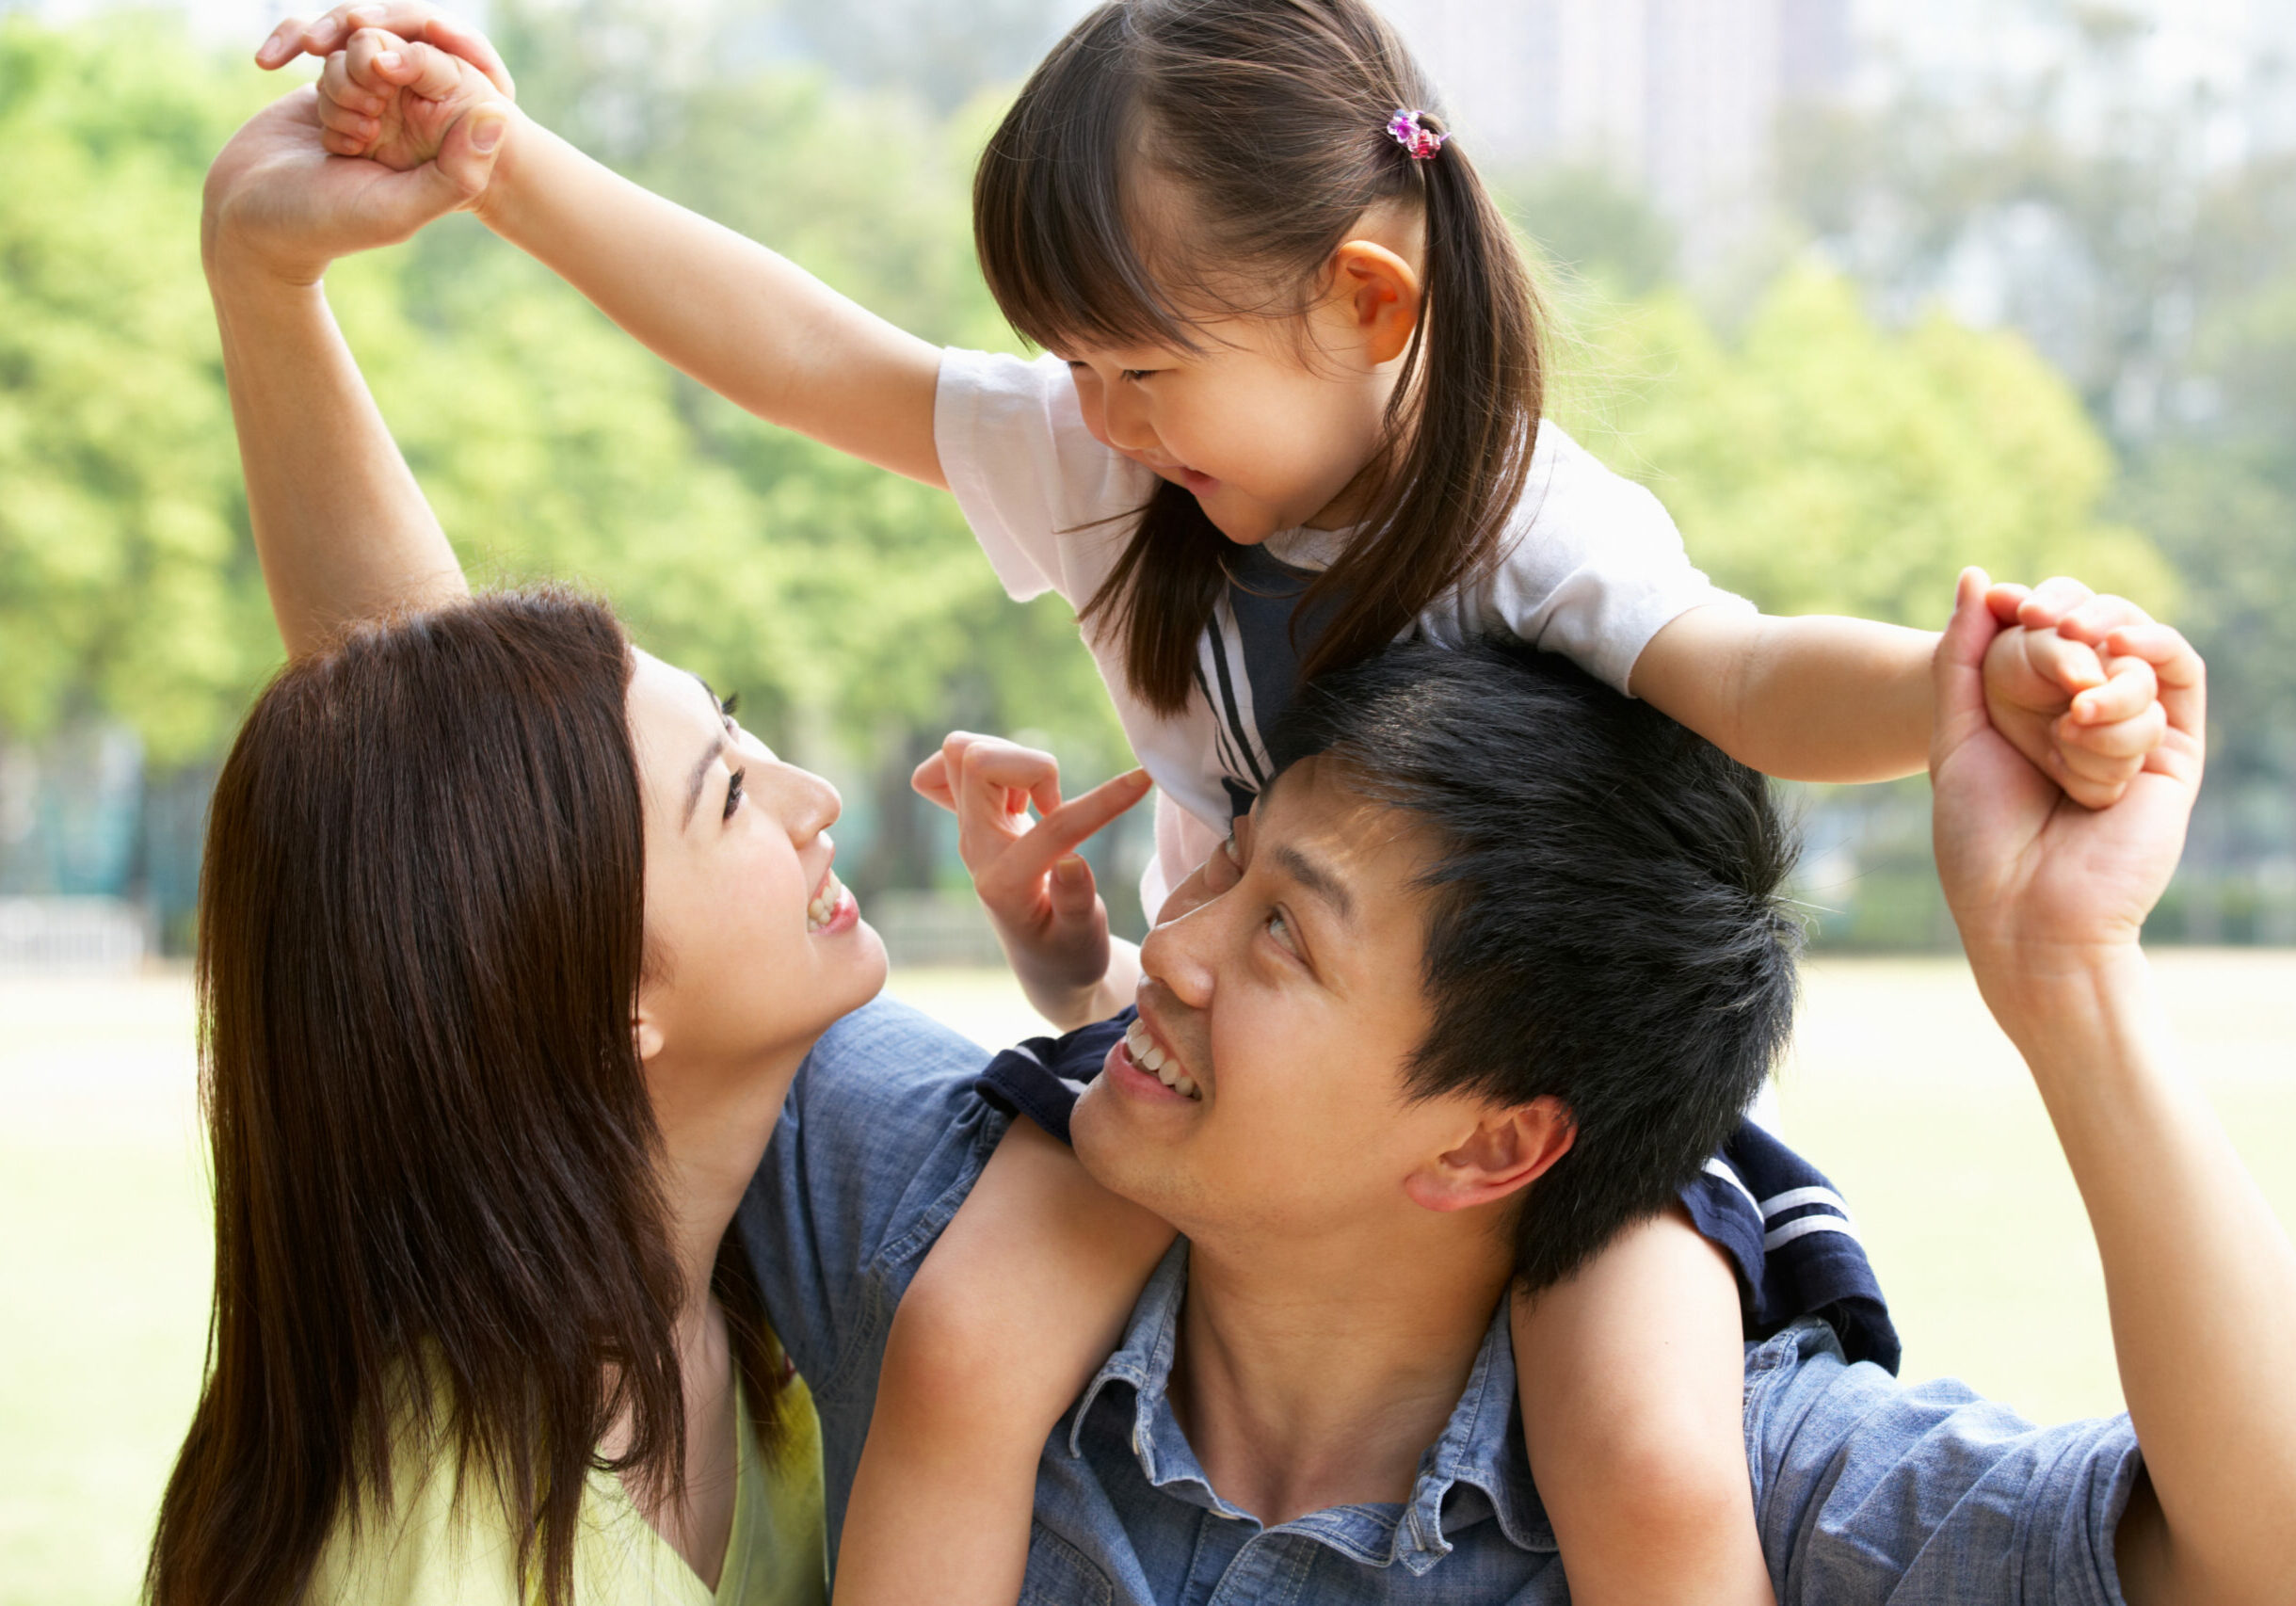 Chinese Family Giving Daughter Ride On Shoulders In Park Looking At Each Other Having Fun Smiling